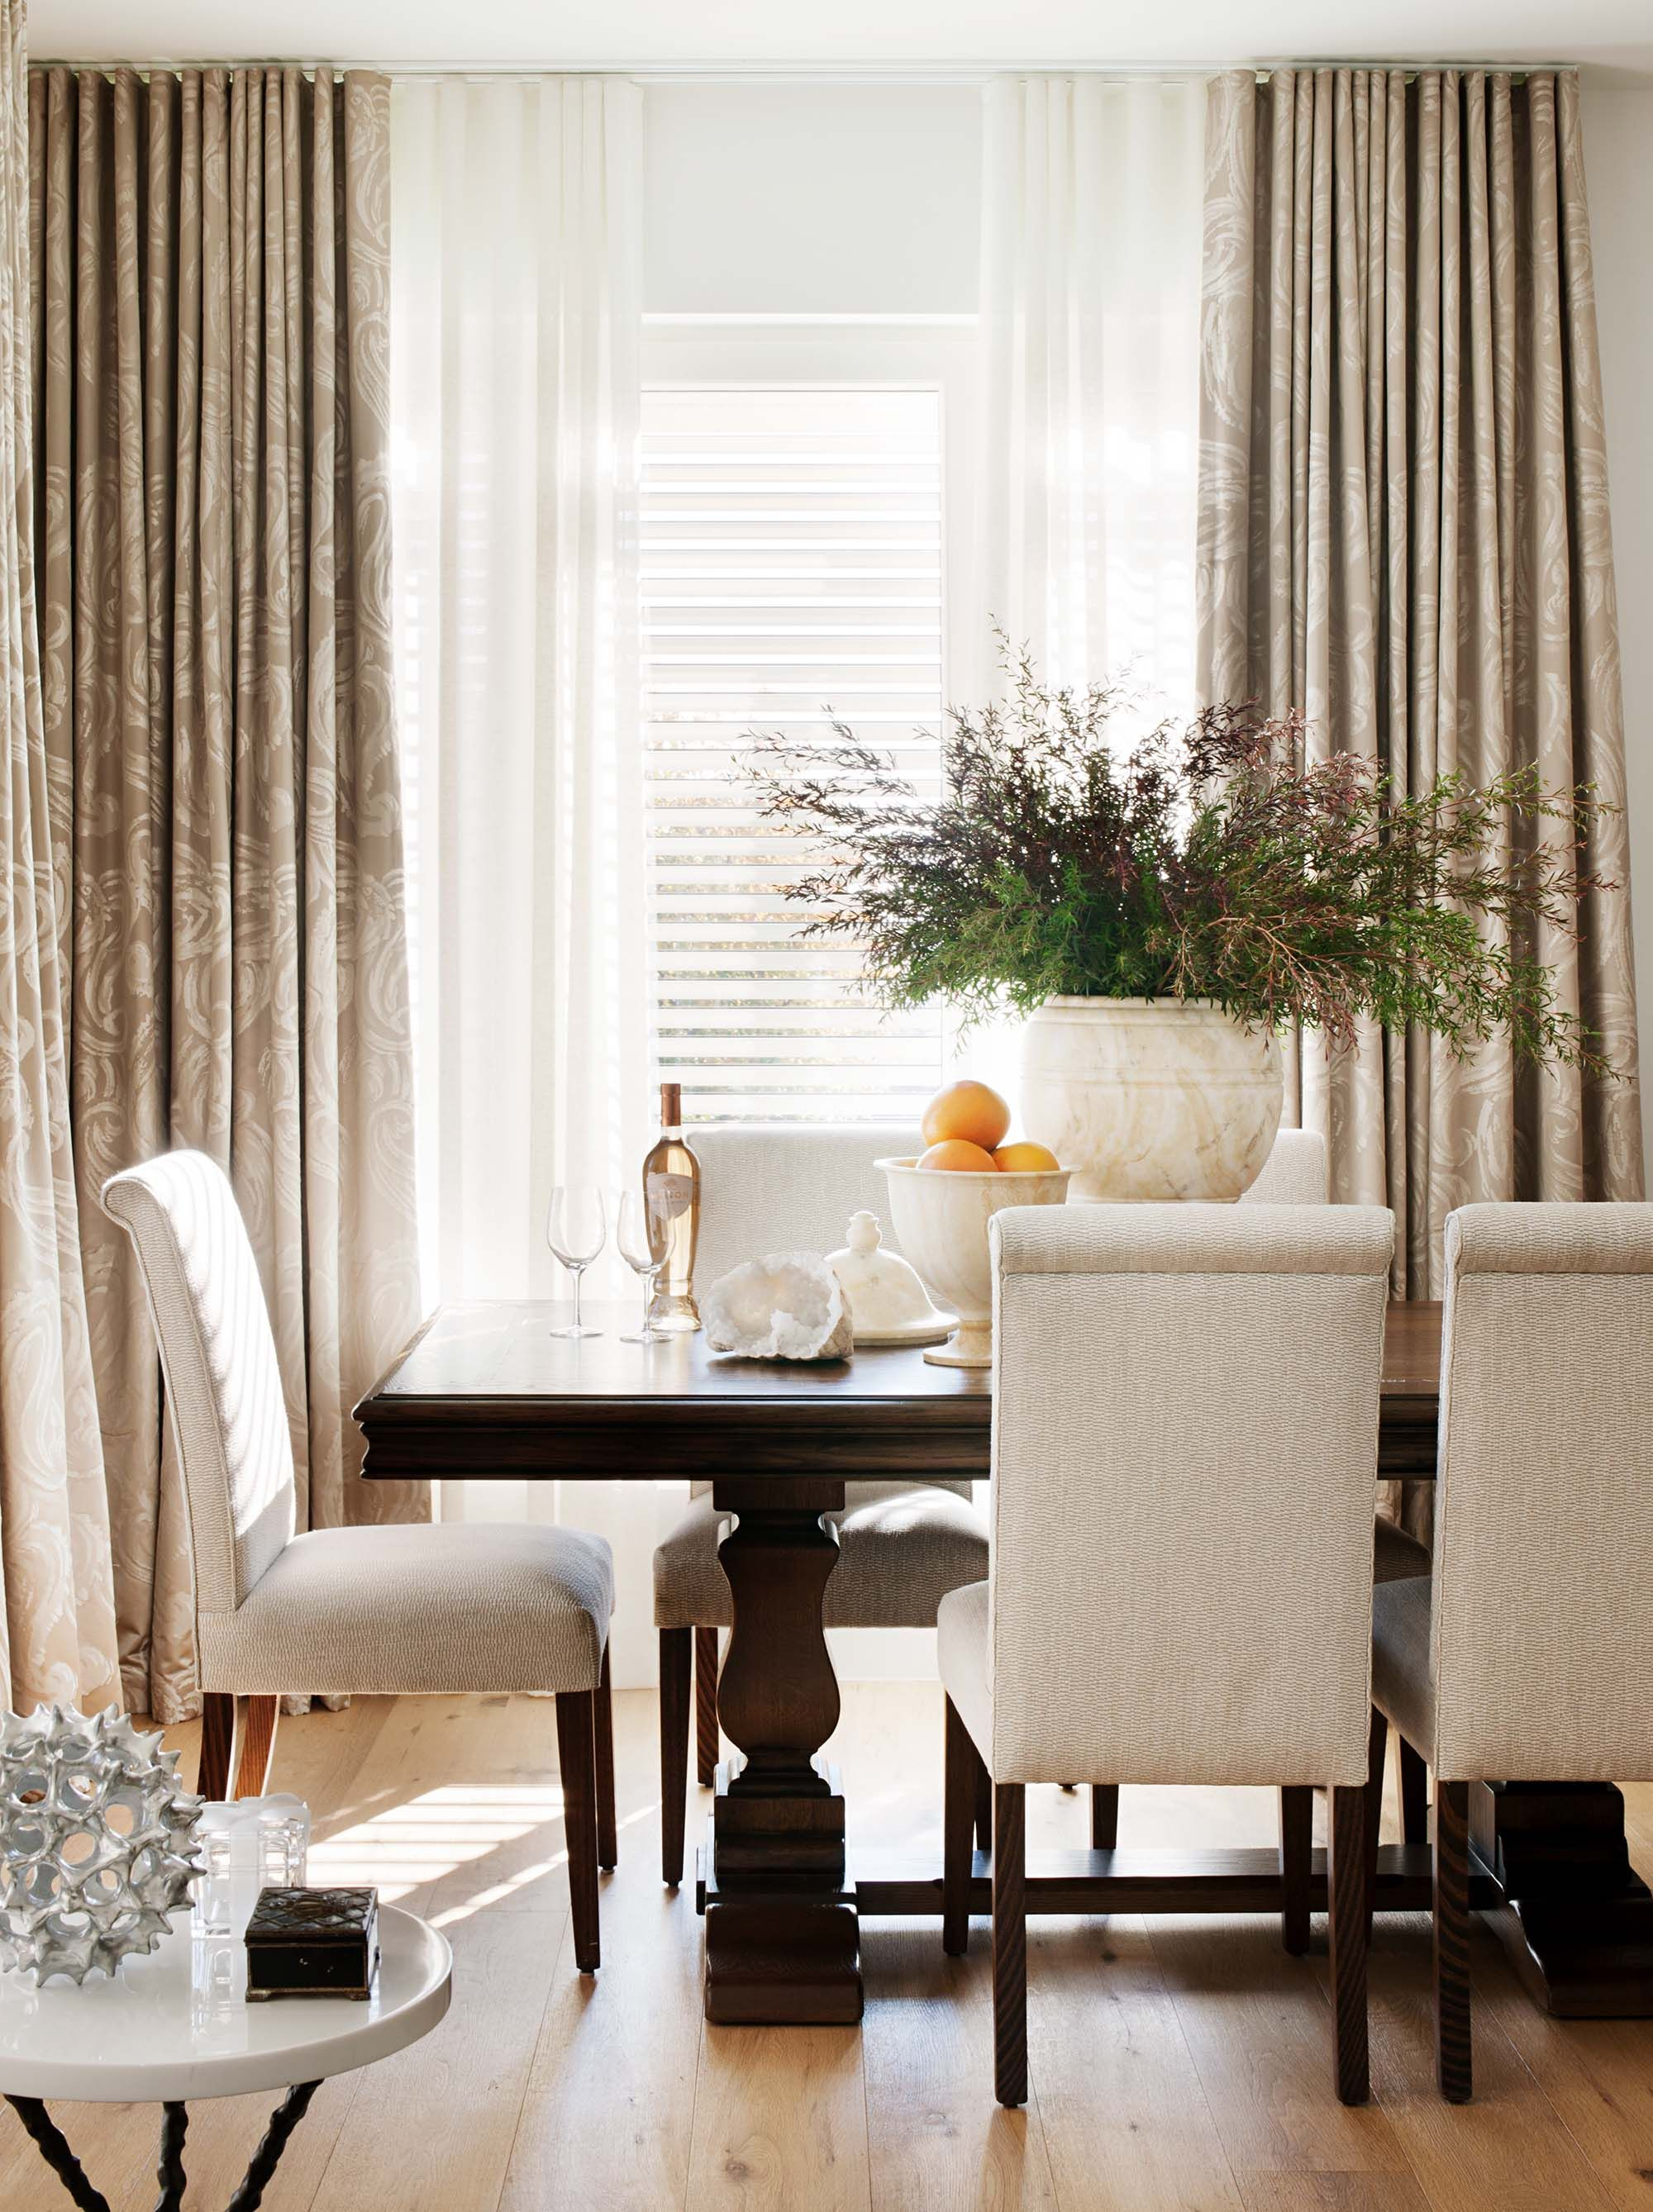 The Private Collection Dining Table Radiates Timeless Elegance In This Home By Coco Republic Interior Design Coco Interior Interior Styling House Inspiration